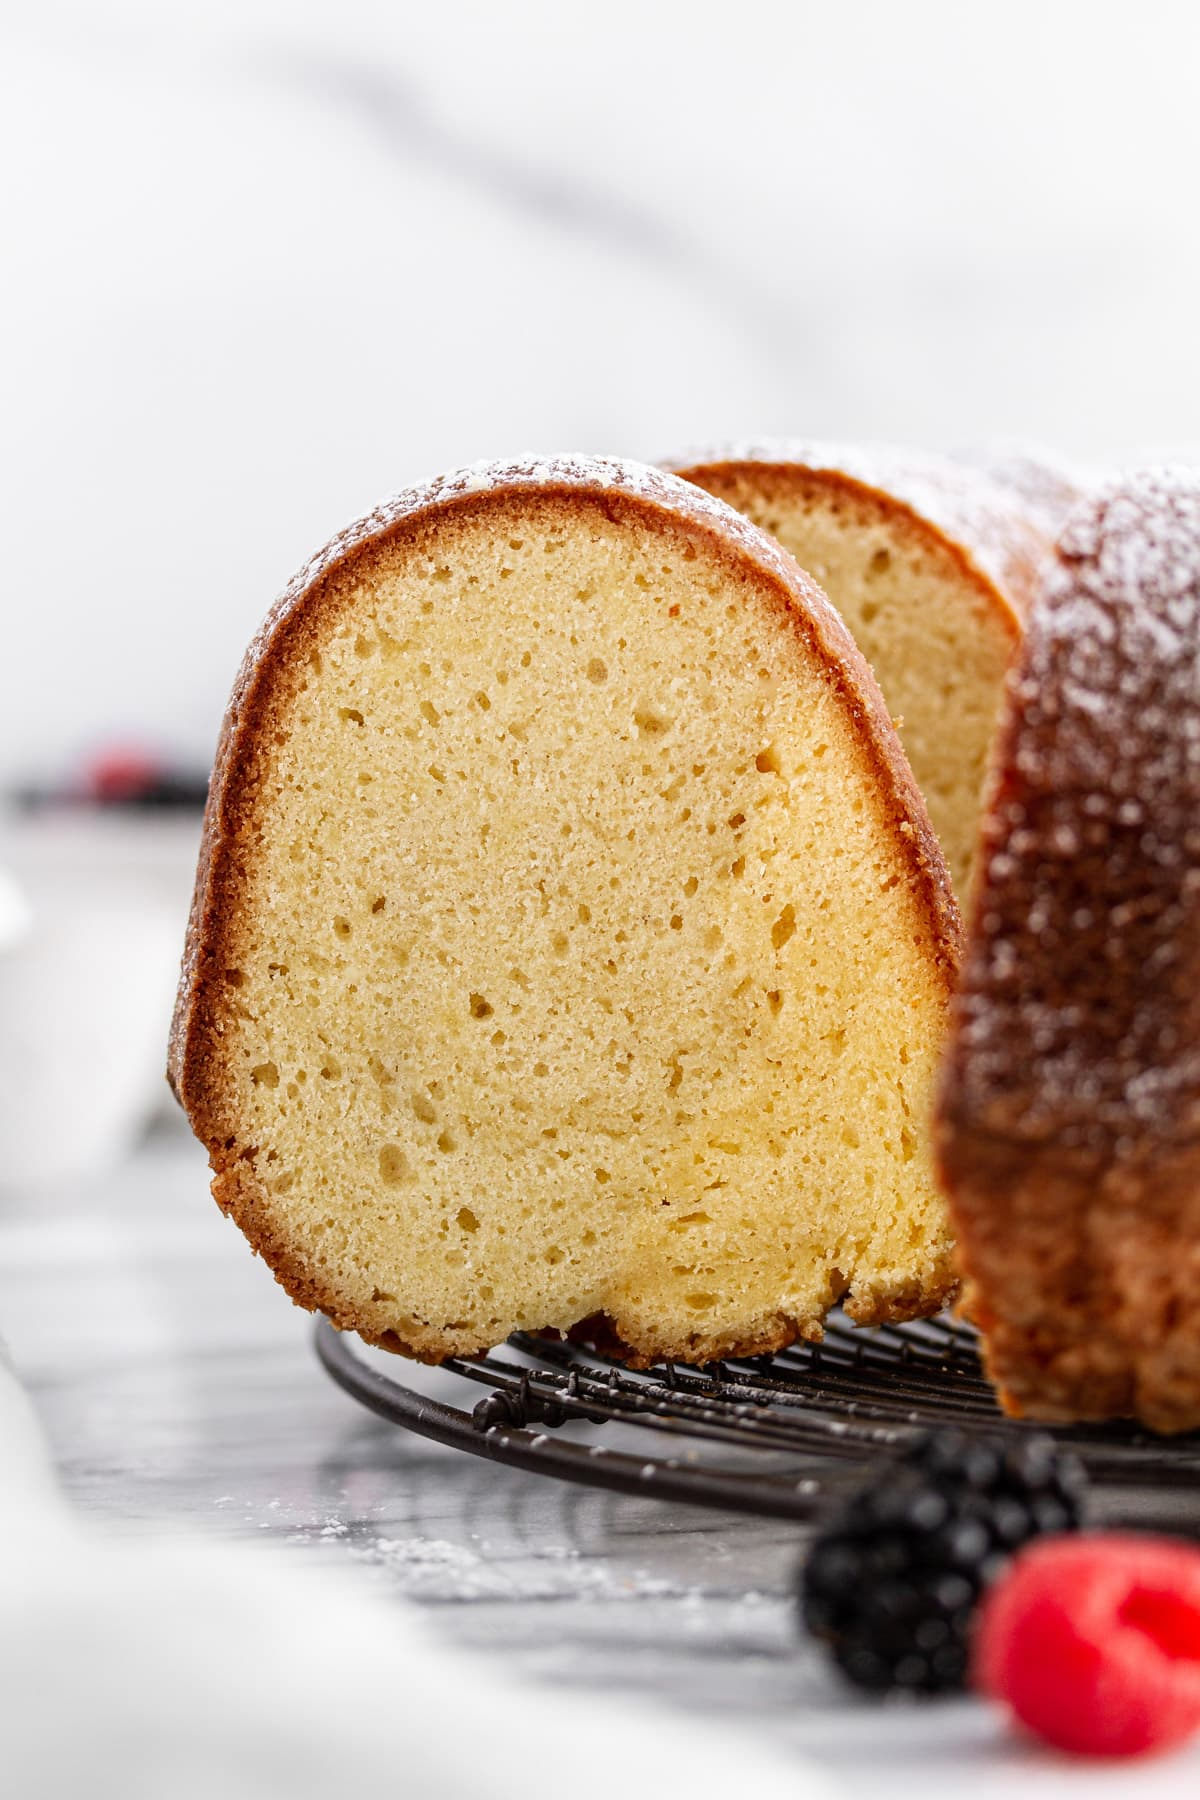 close-up shot of a slice of sour cream pound cake